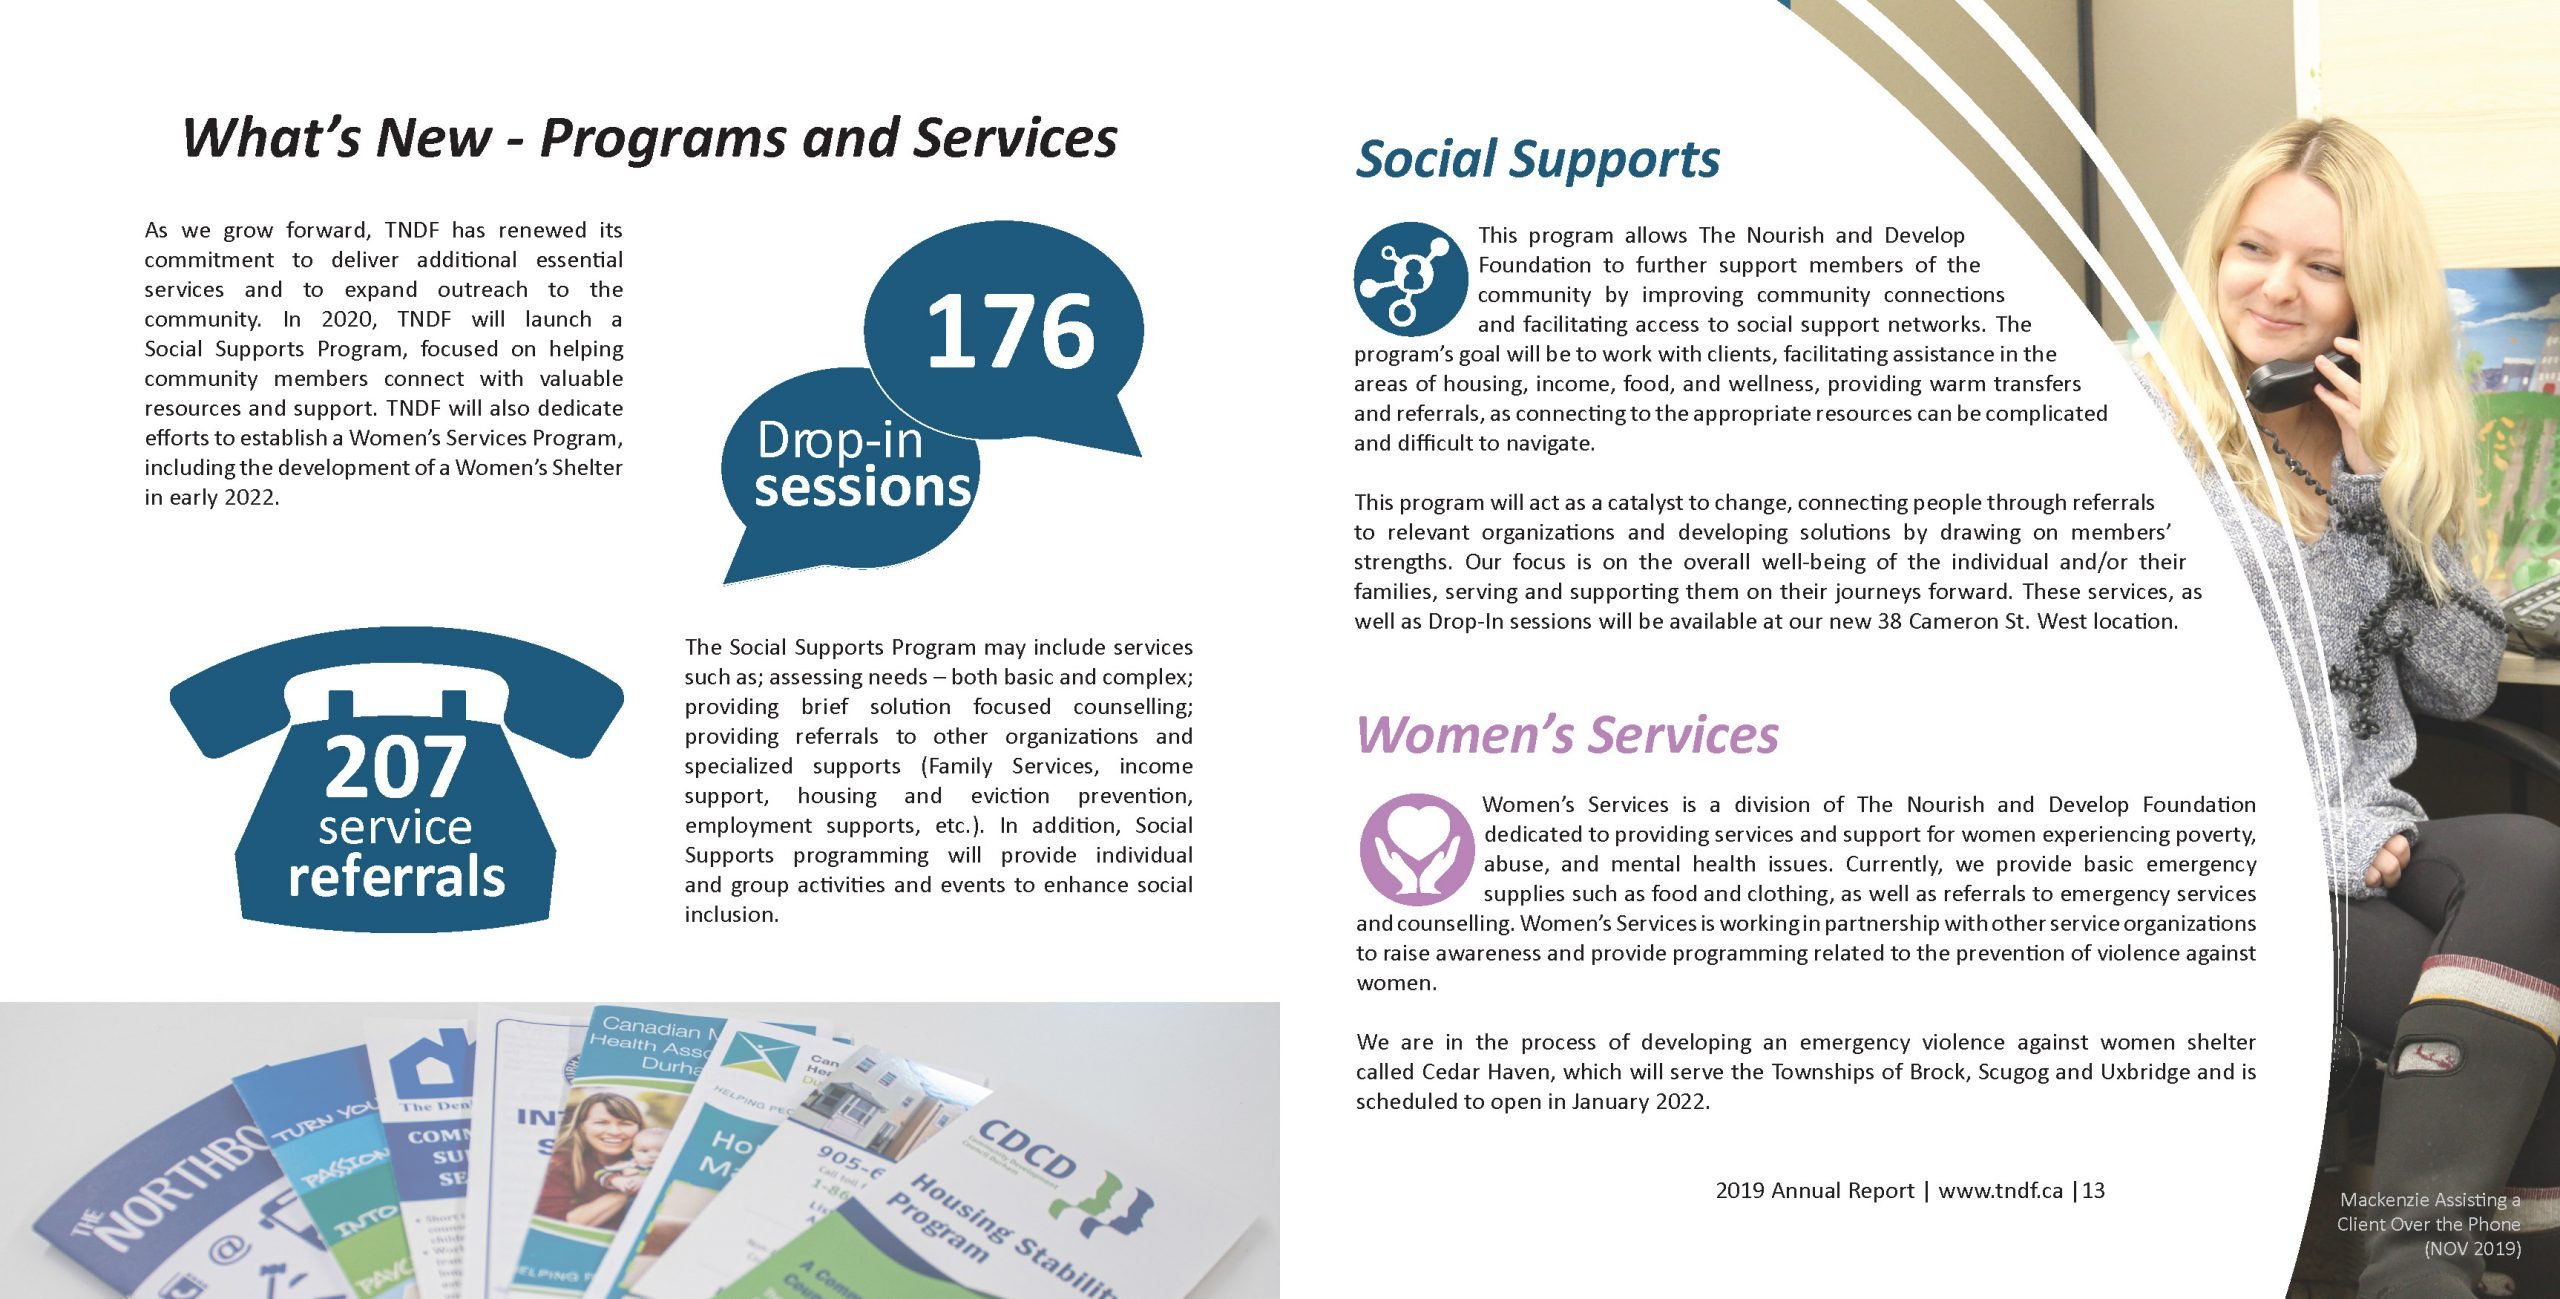 Annual Report 2019 Page 7 (same as Annual Report Download)